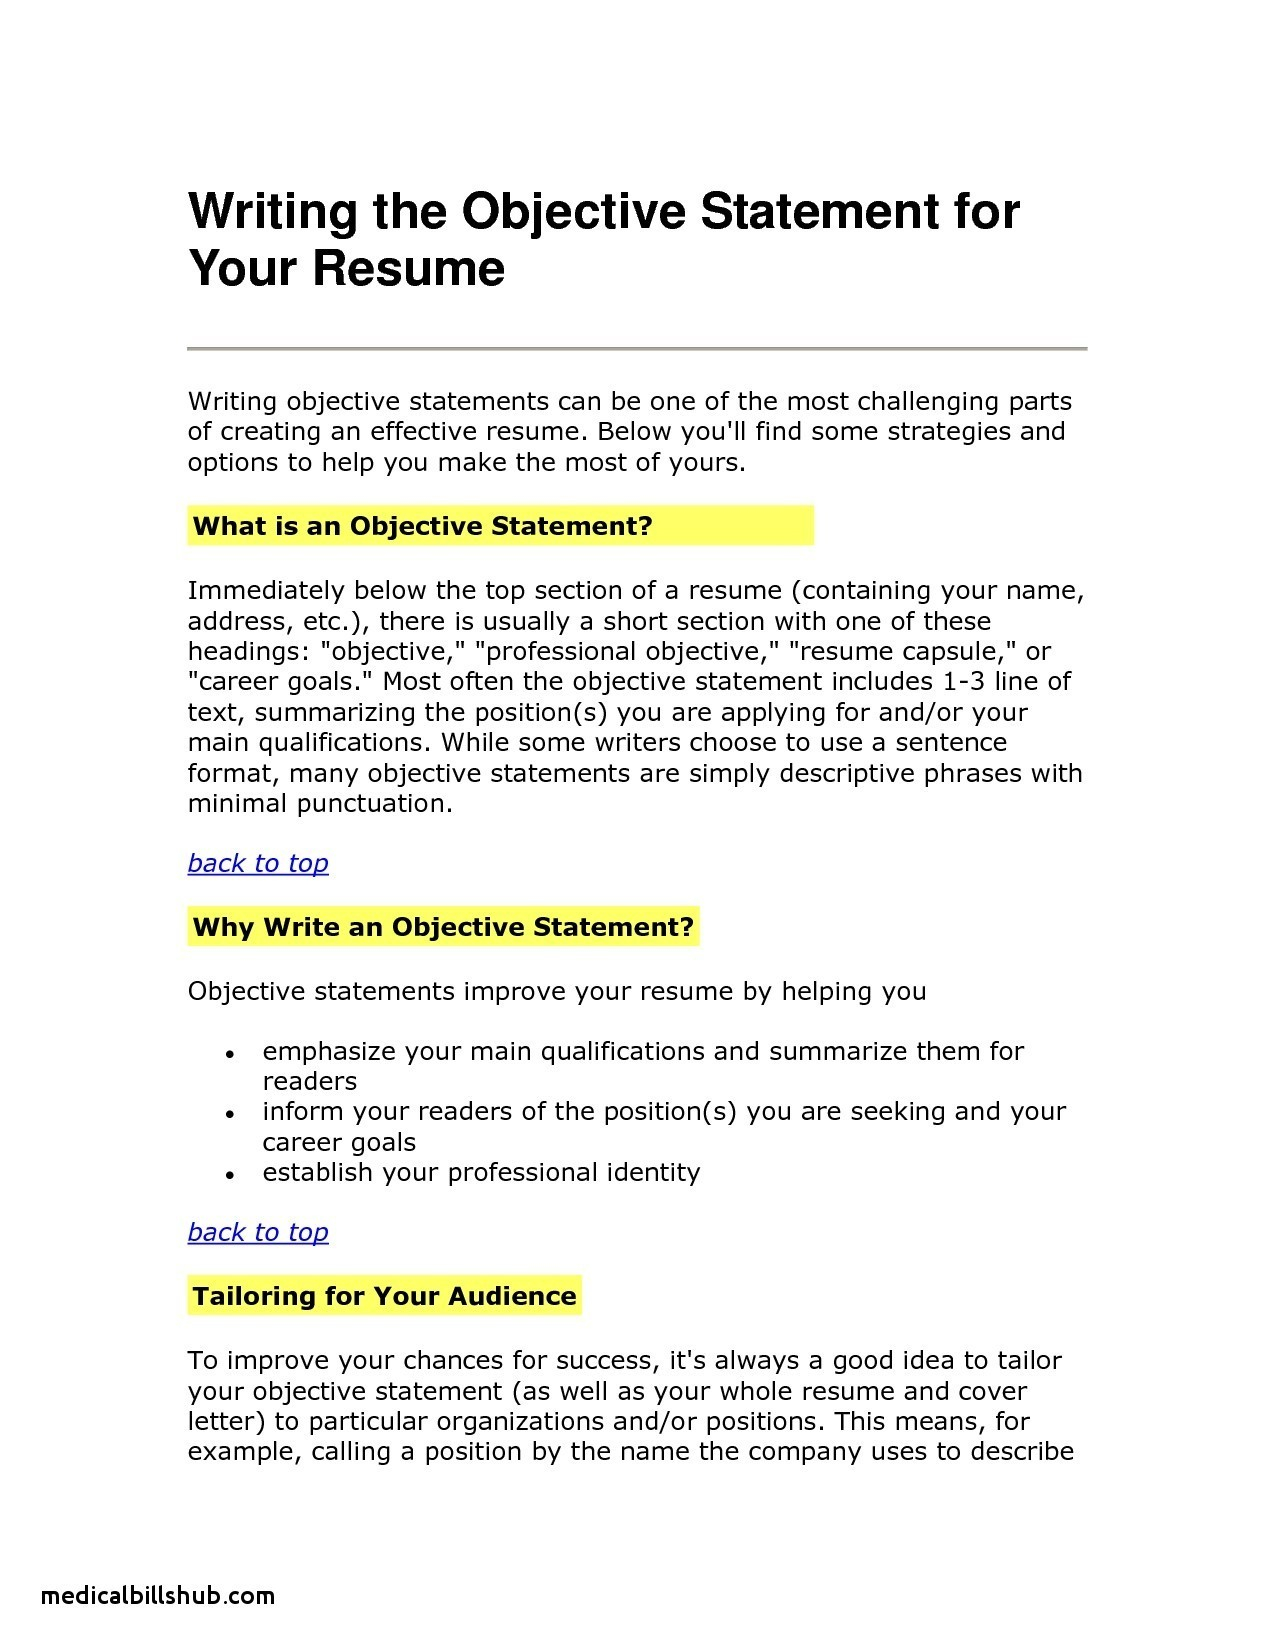 Caregiver Resume Summary - Caregiver Summary for Resume Elegant Caregiver Resume Skills Unique